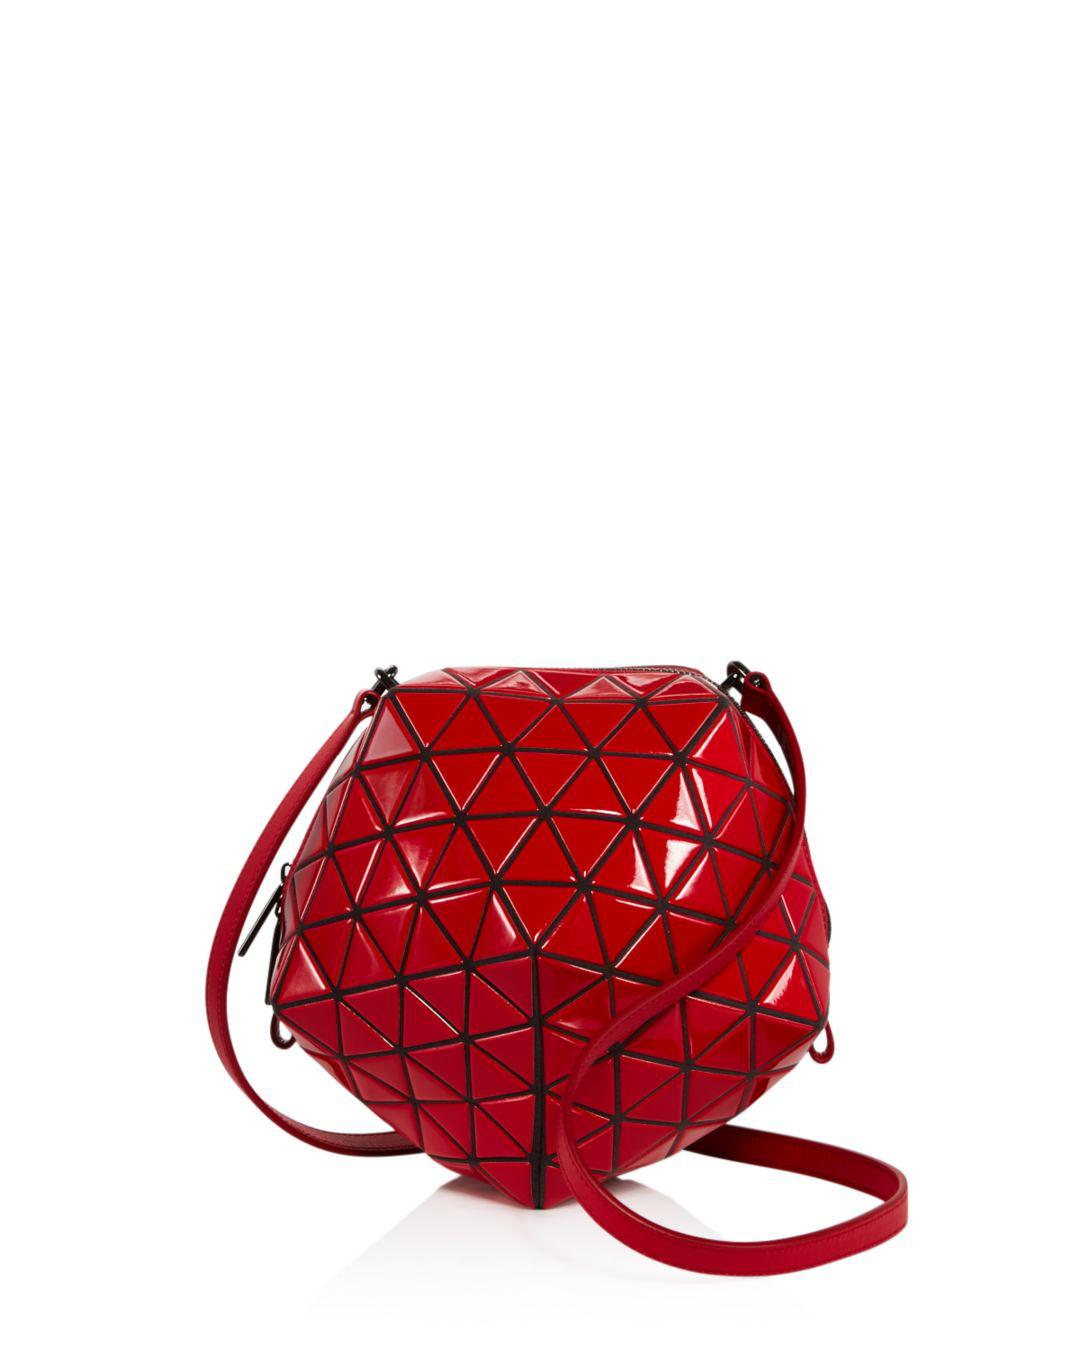 Lyst - Bao Bao Issey Miyake Small Planet Bag in Red 7f67ec4861867